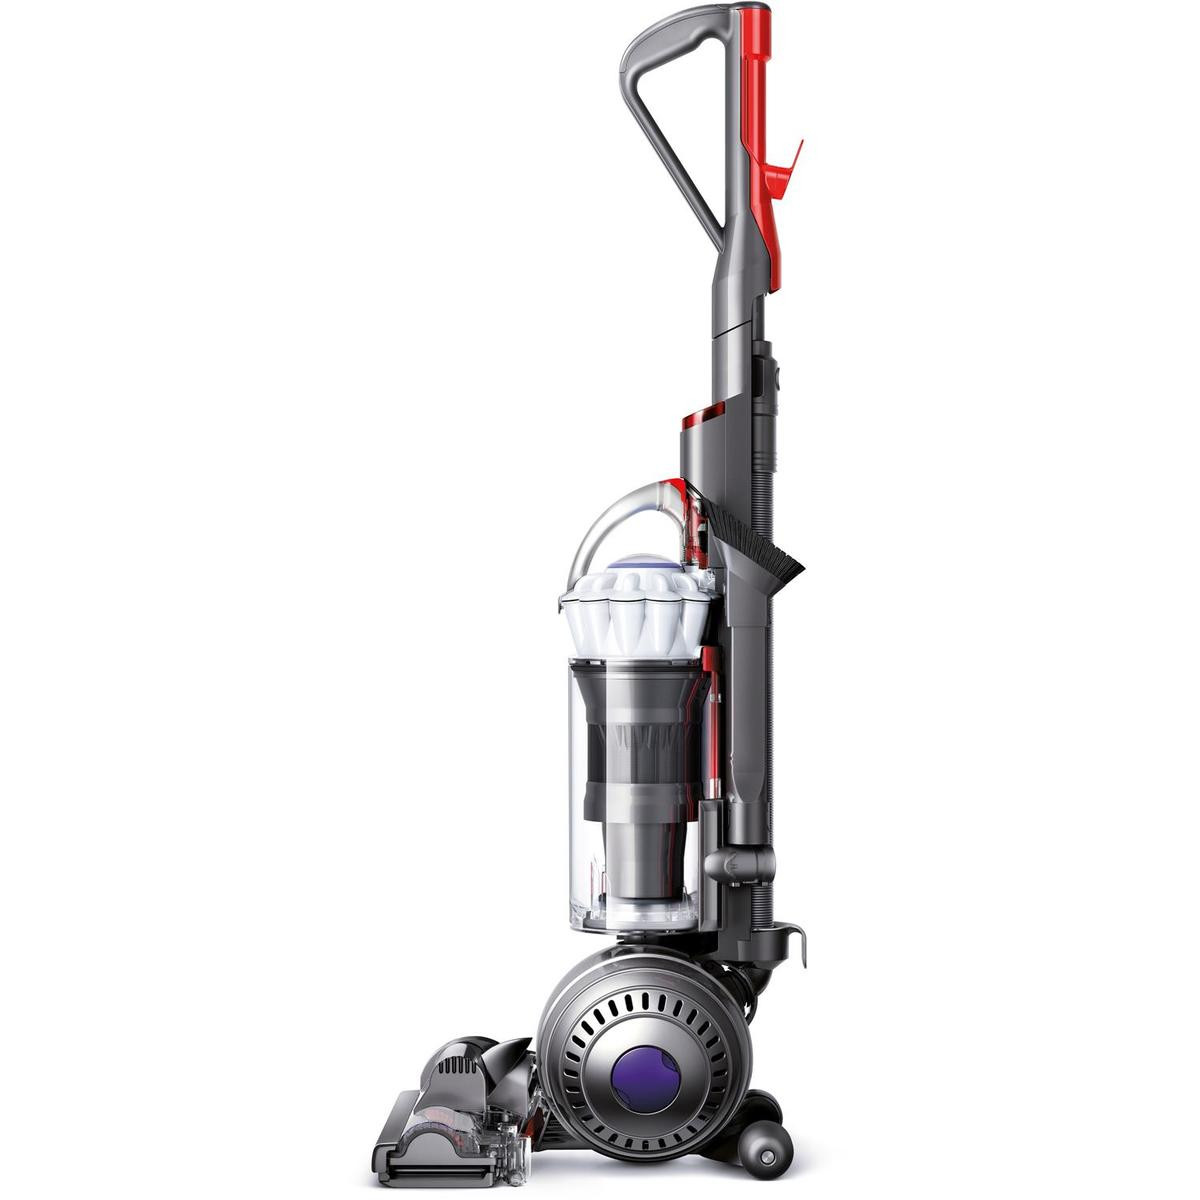 best vacuum for pet hair and hardwood floors 2014 of dyson ball up16 multi floor vacuum cleaner big w intended for dyson ball up16 multi floor vacuum cleaner